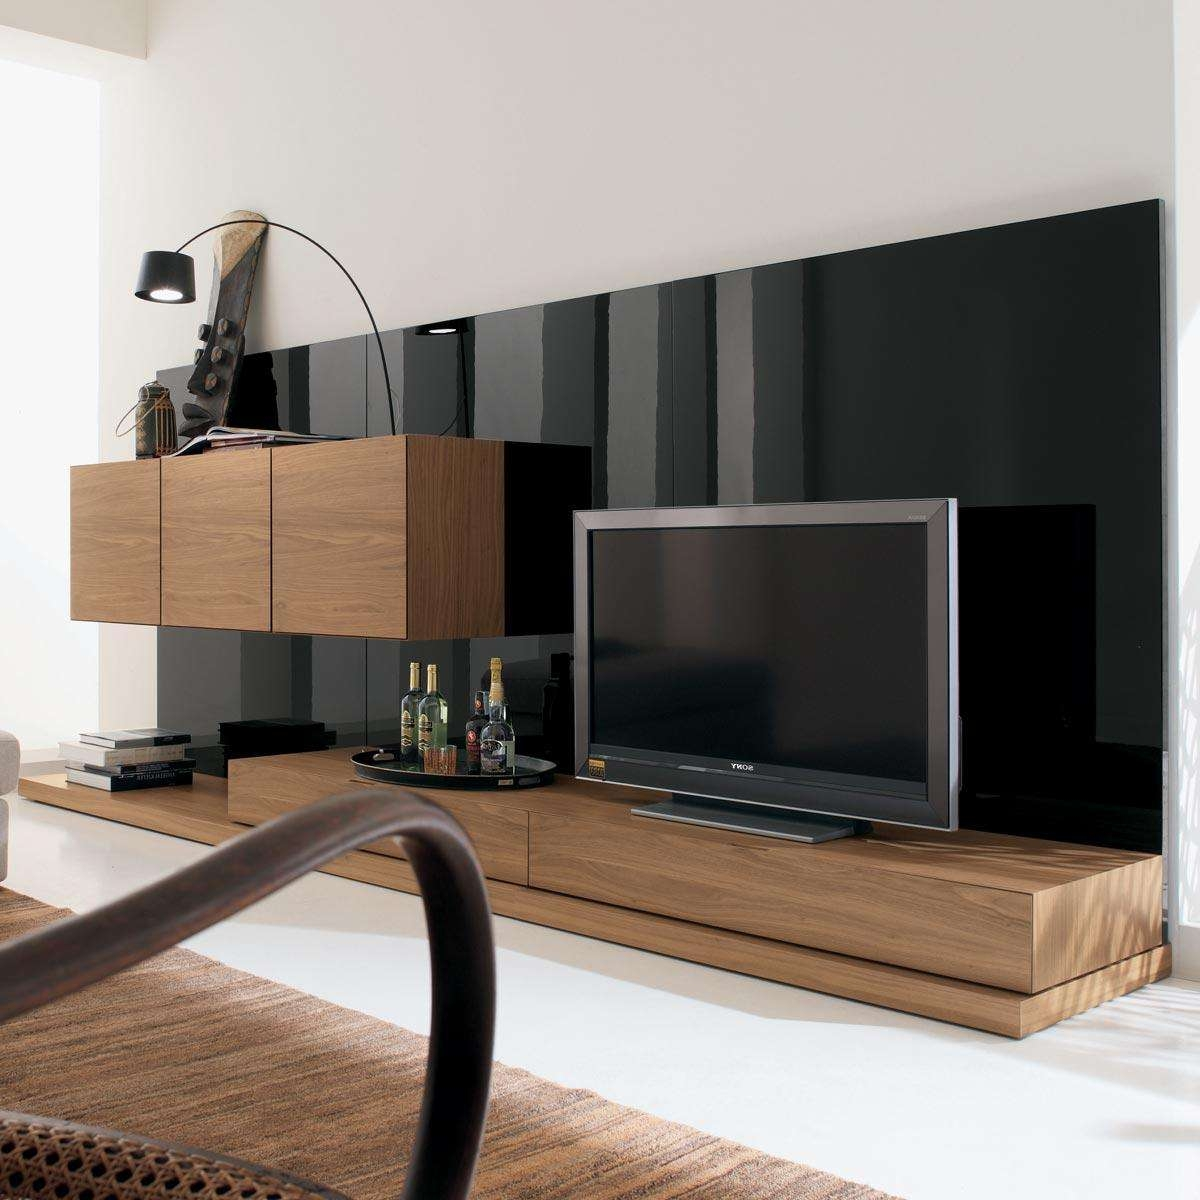 Modern Nature Wood Big Screen Tv Stand Wall Mounted Living Room Regarding Contemporary Wood Tv Stands (View 8 of 15)